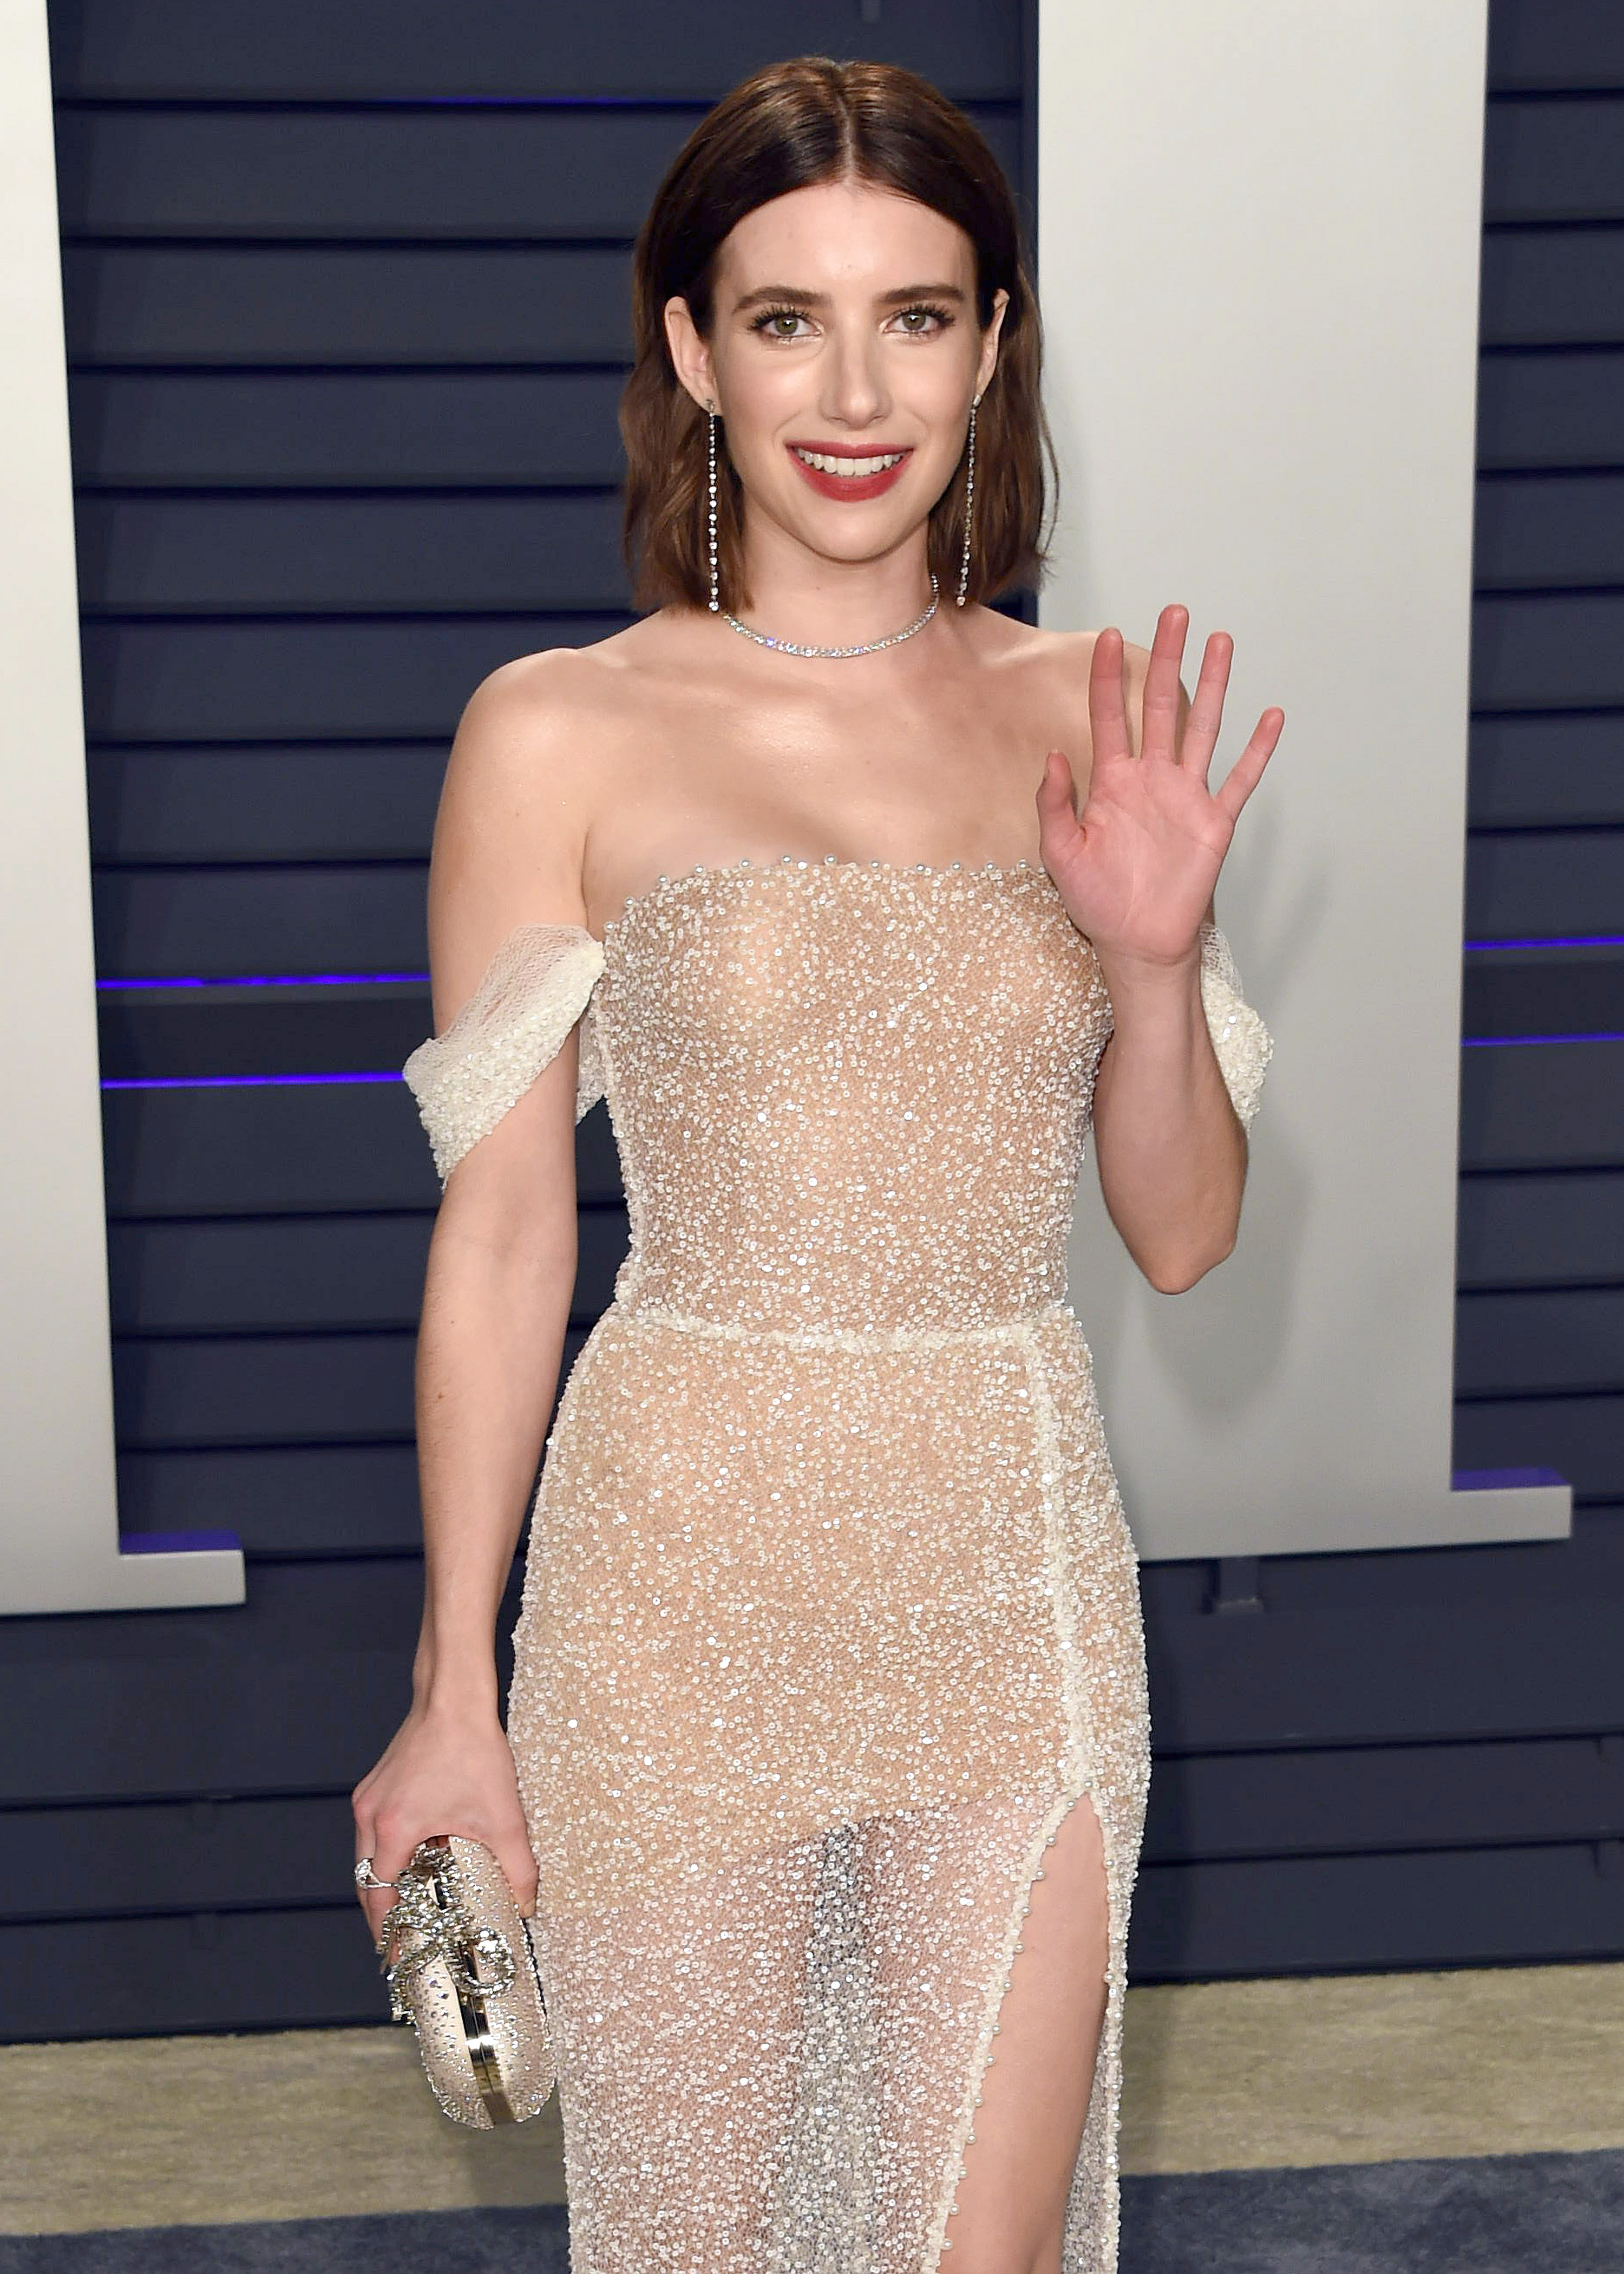 Emma Roberts attends the Vanity Fair Oscar Party in Beverly Hills on Feb. 24, 2019.